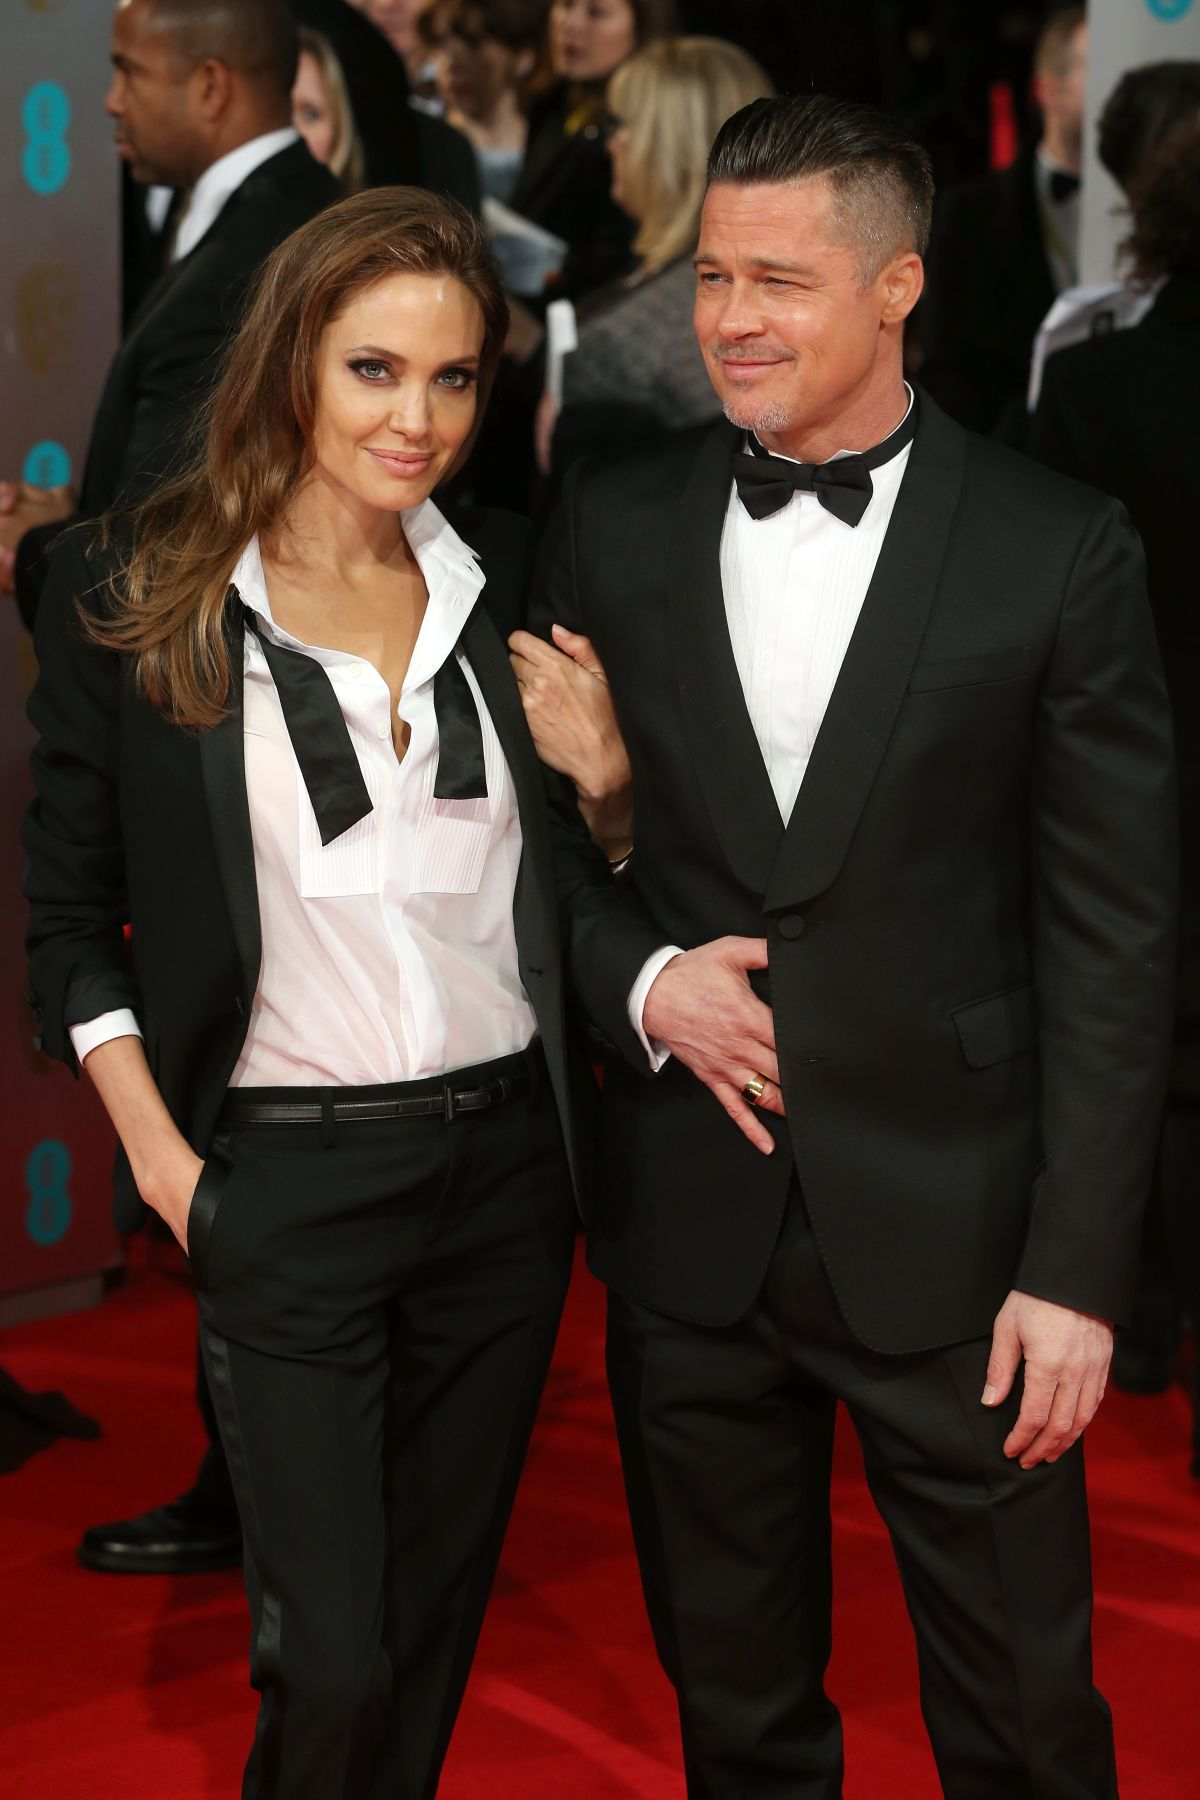 ANGELINA JOLIE and Brad Pitt at 2014 Bafta Awards in London